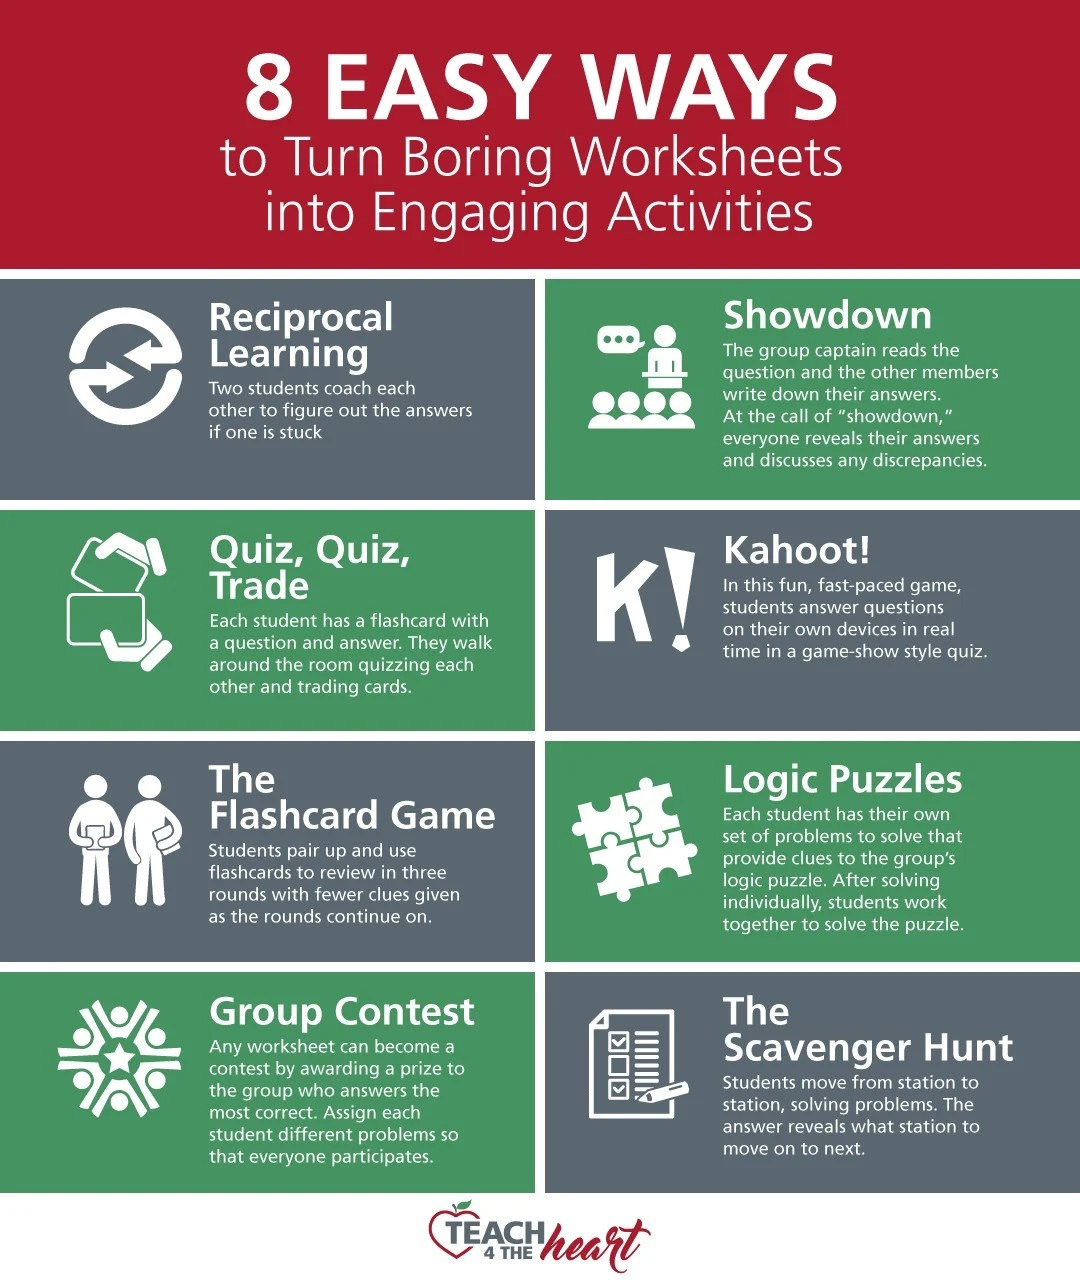 7 Easy Ways To Turn Boring Worksheets Into Engaging Activities